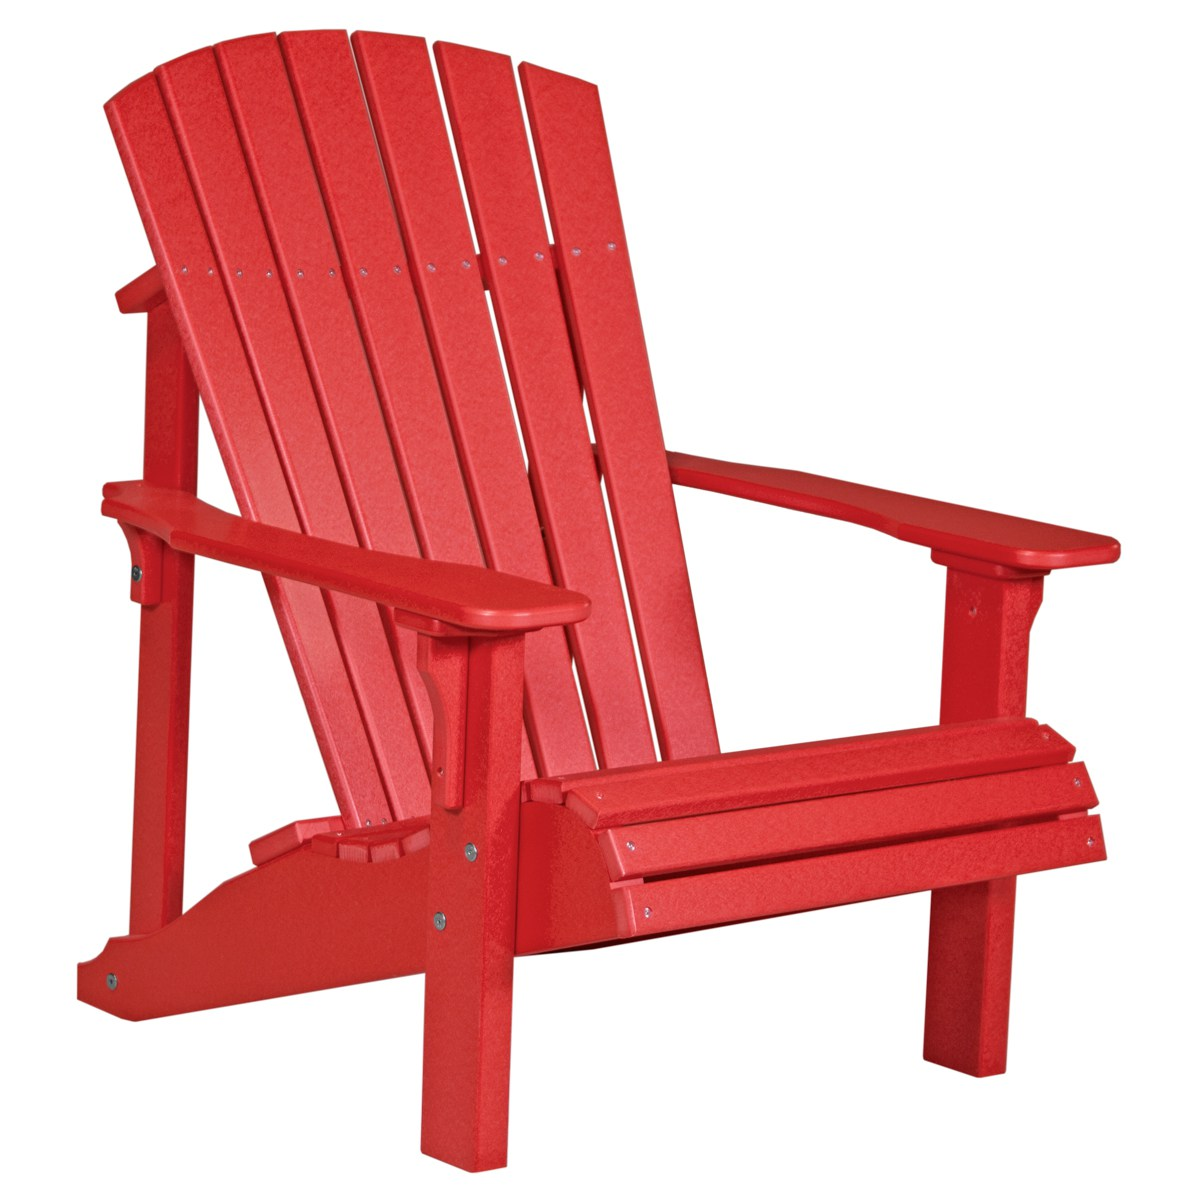 Red Adirondack Chairs Deluxe Adirondack Chair Recycled Patio Fine Oak Things